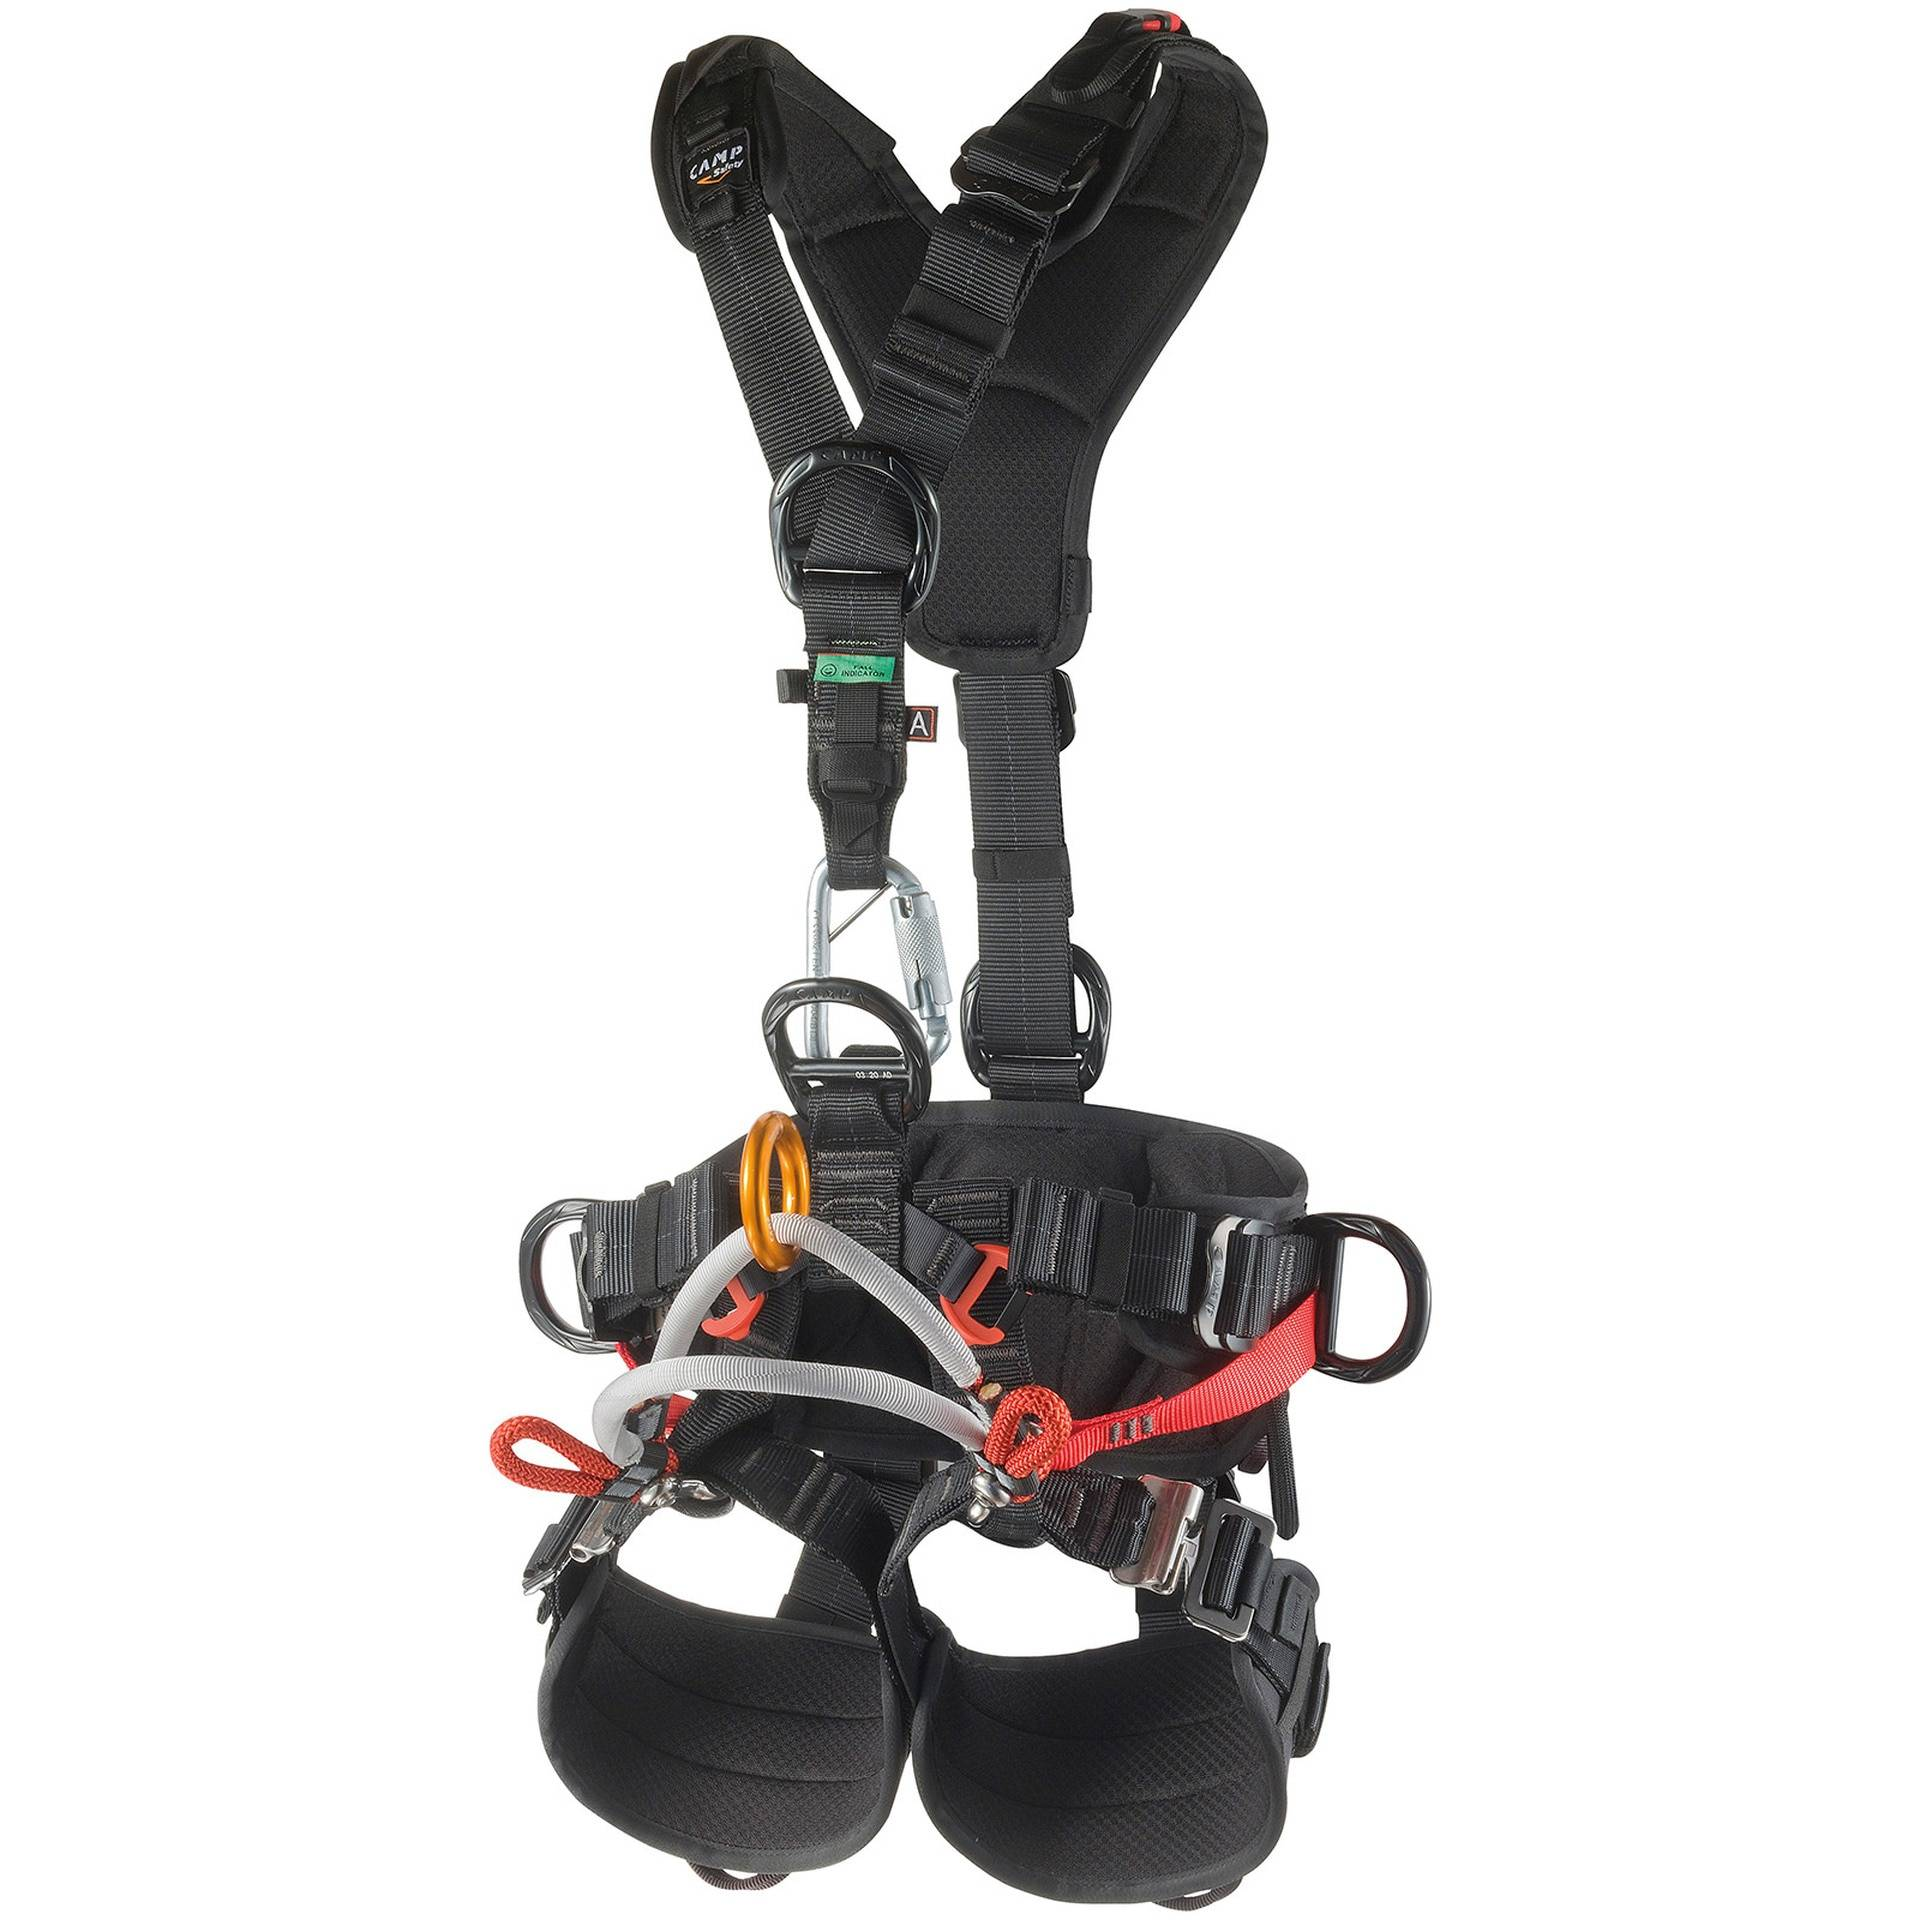 image of Camp Tree Access ANSI XT Fall-Arrest Harness